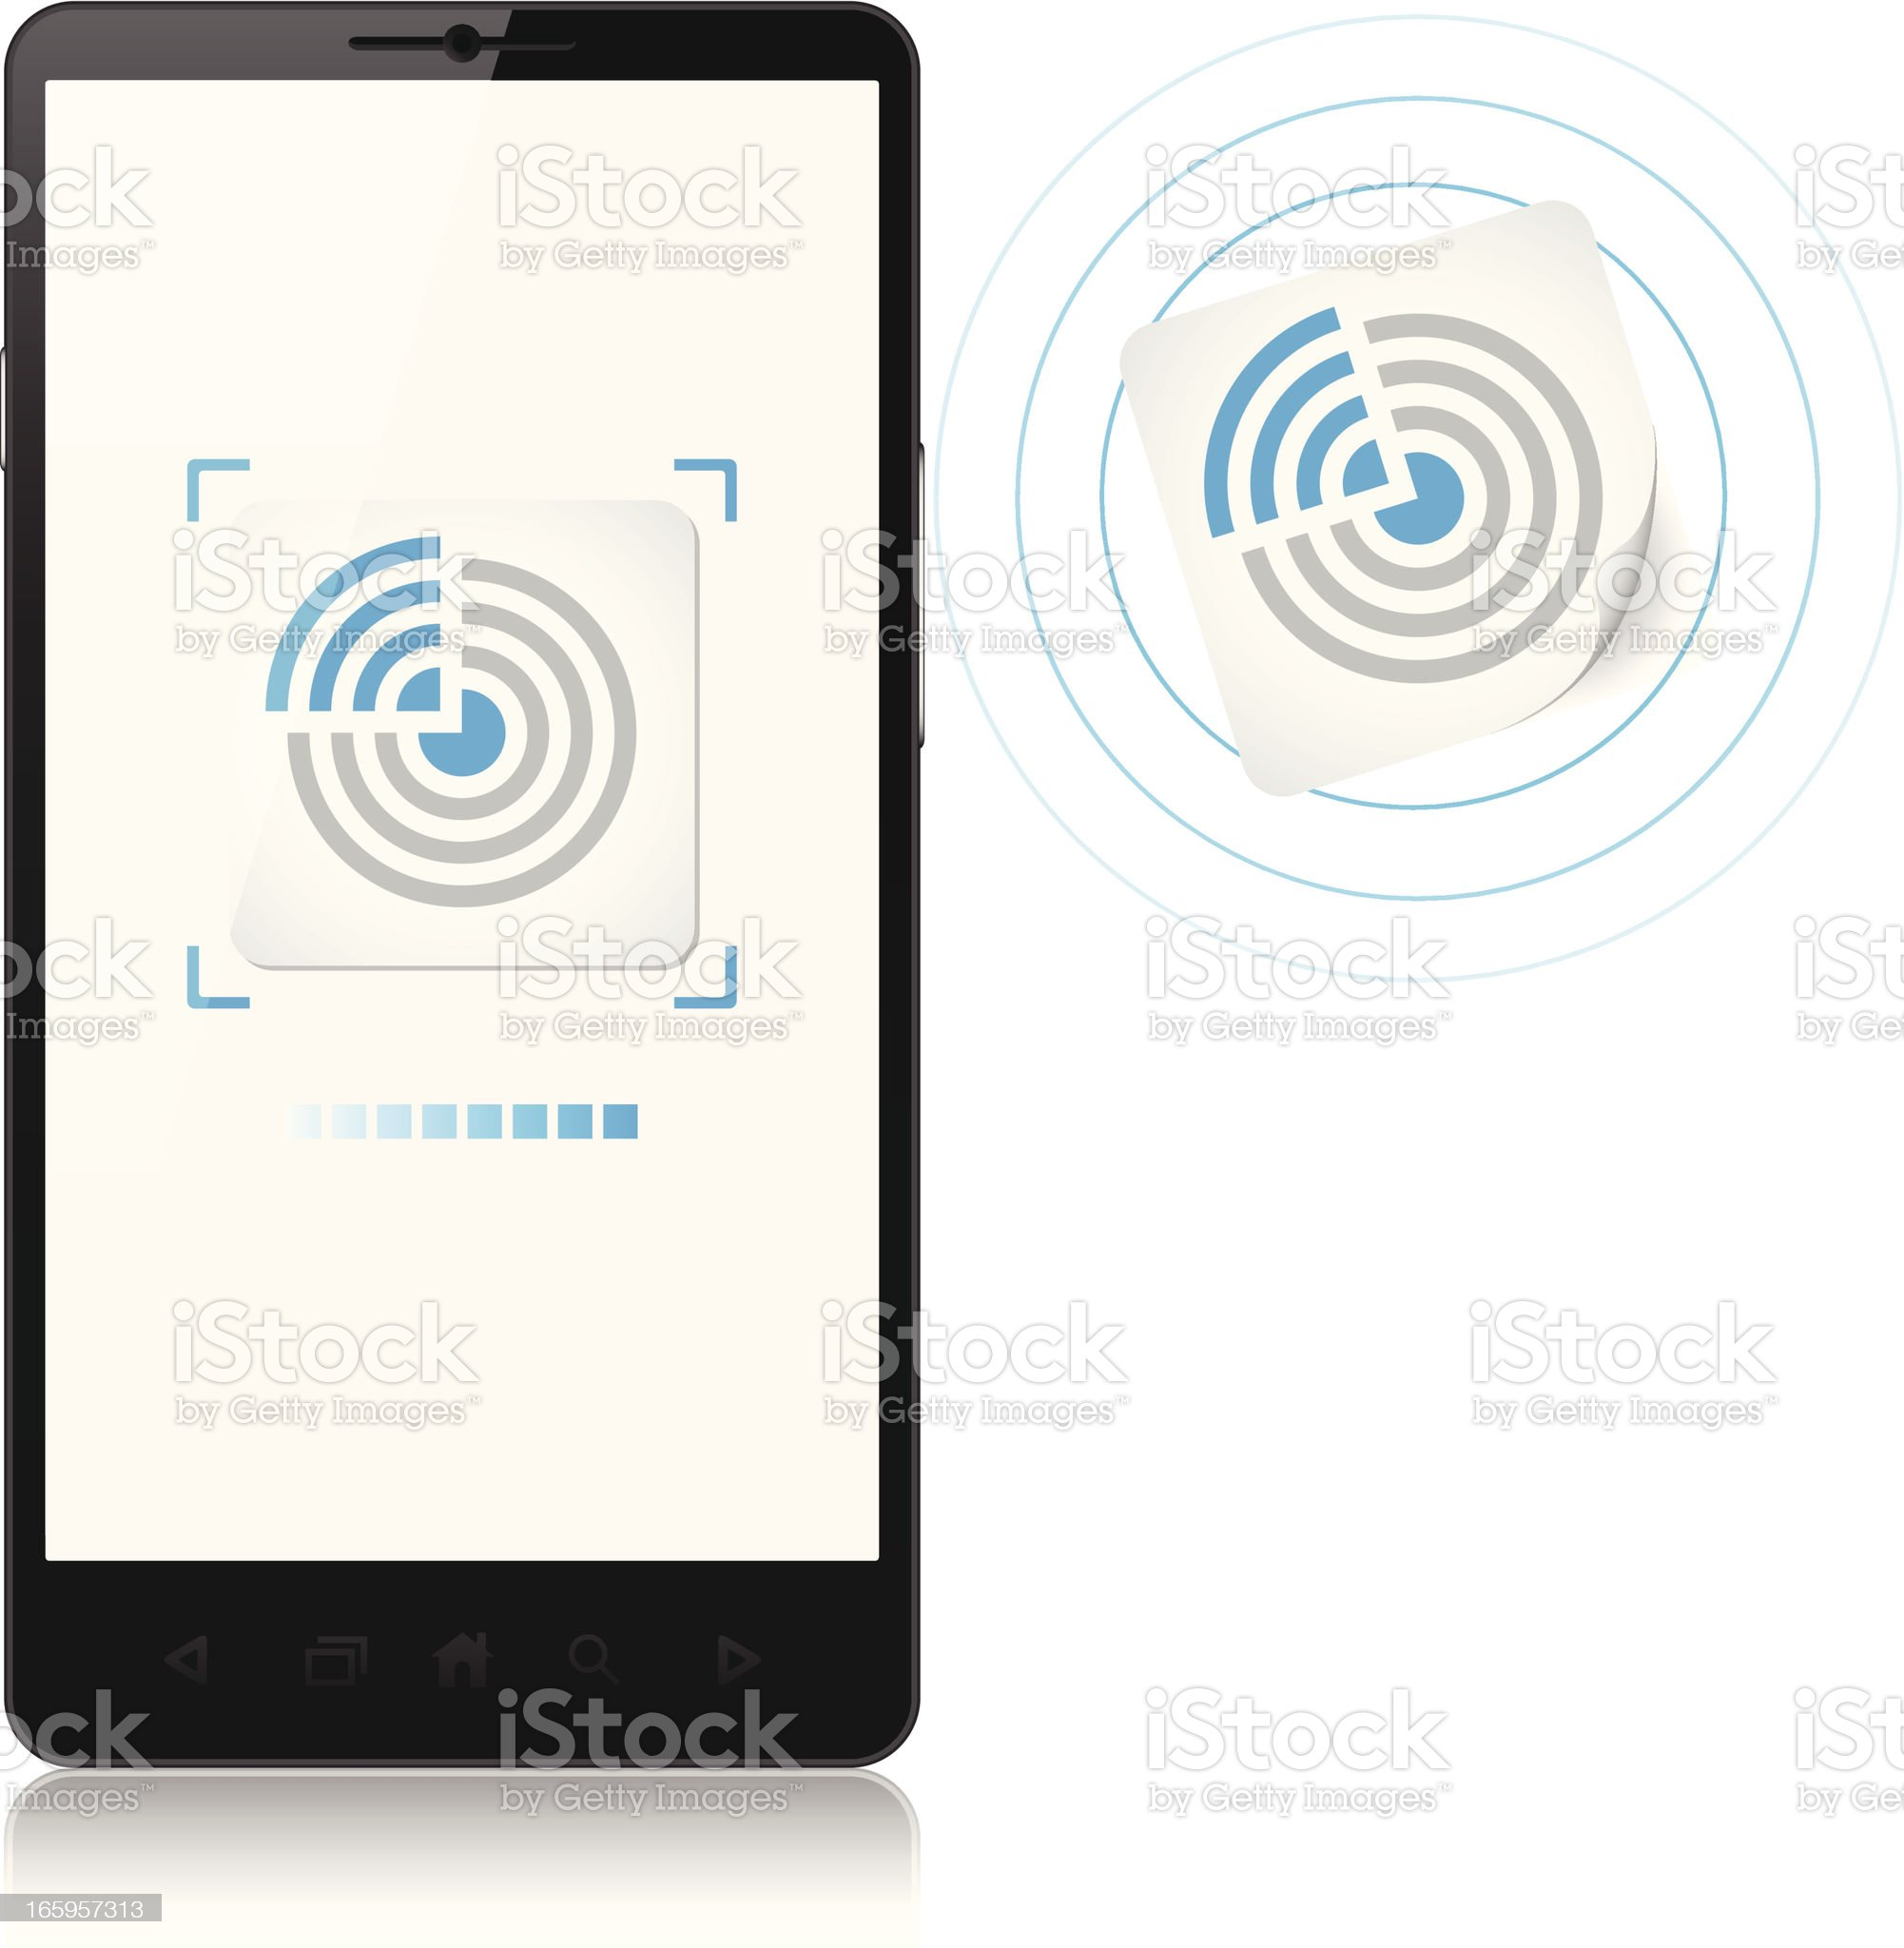 Mobile phone, tag NFC, new contactless technology royalty-free stock vector art